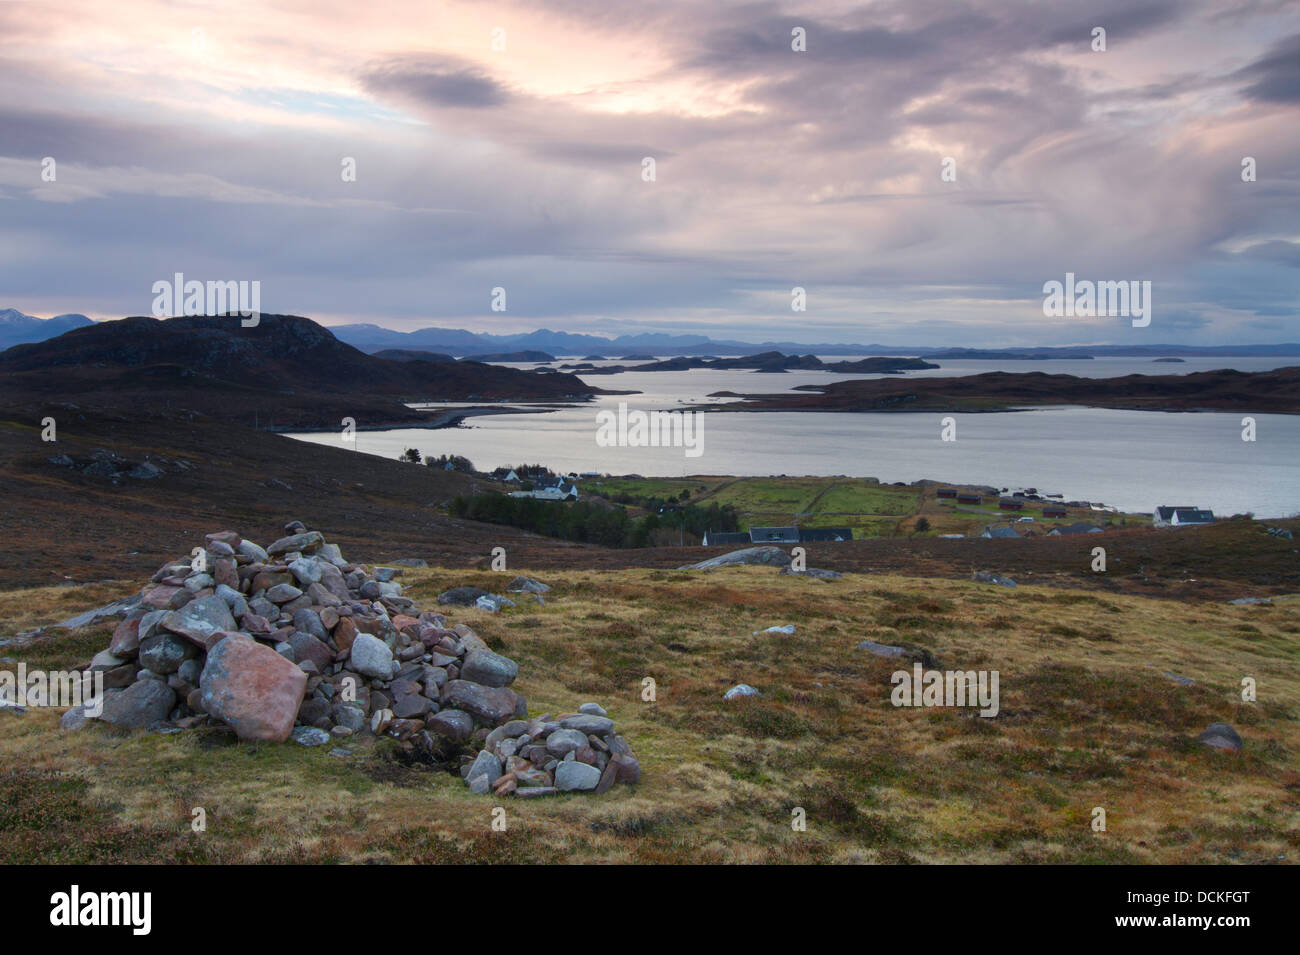 cairn view of harbor - Stock Image